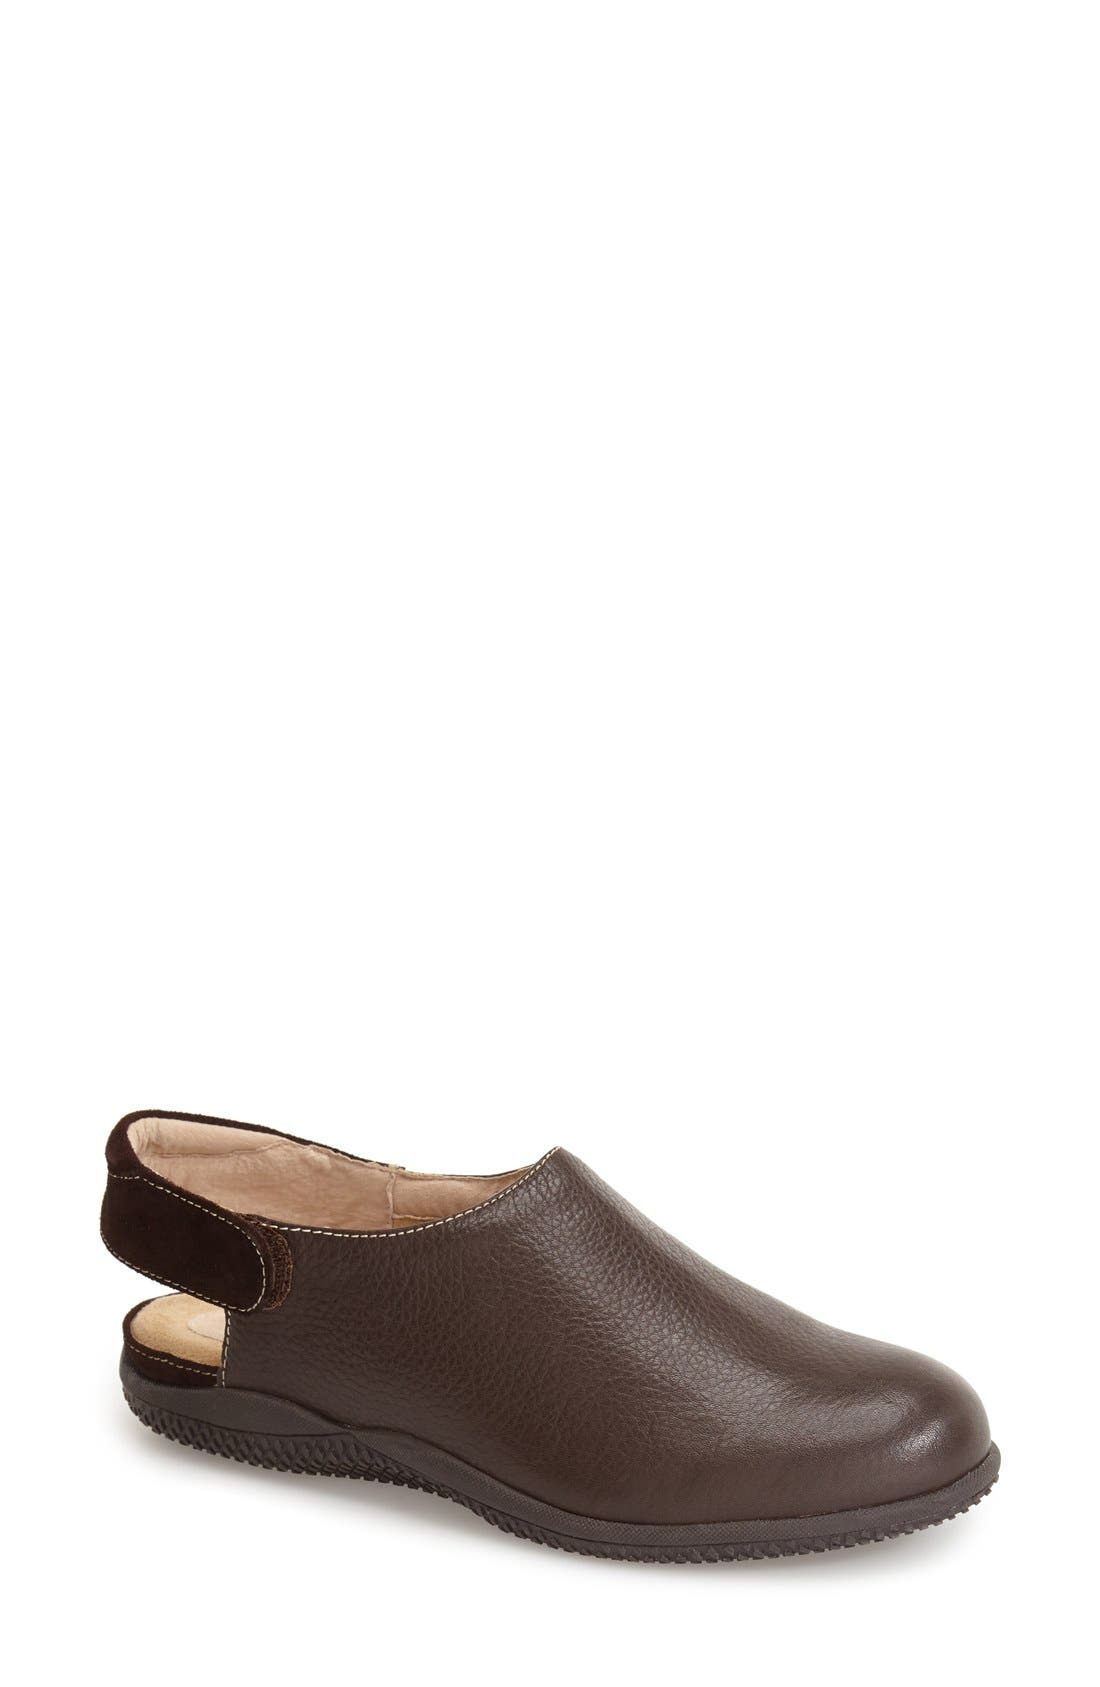 'Holland' Slingback Clog,                         Main,                         color, 214